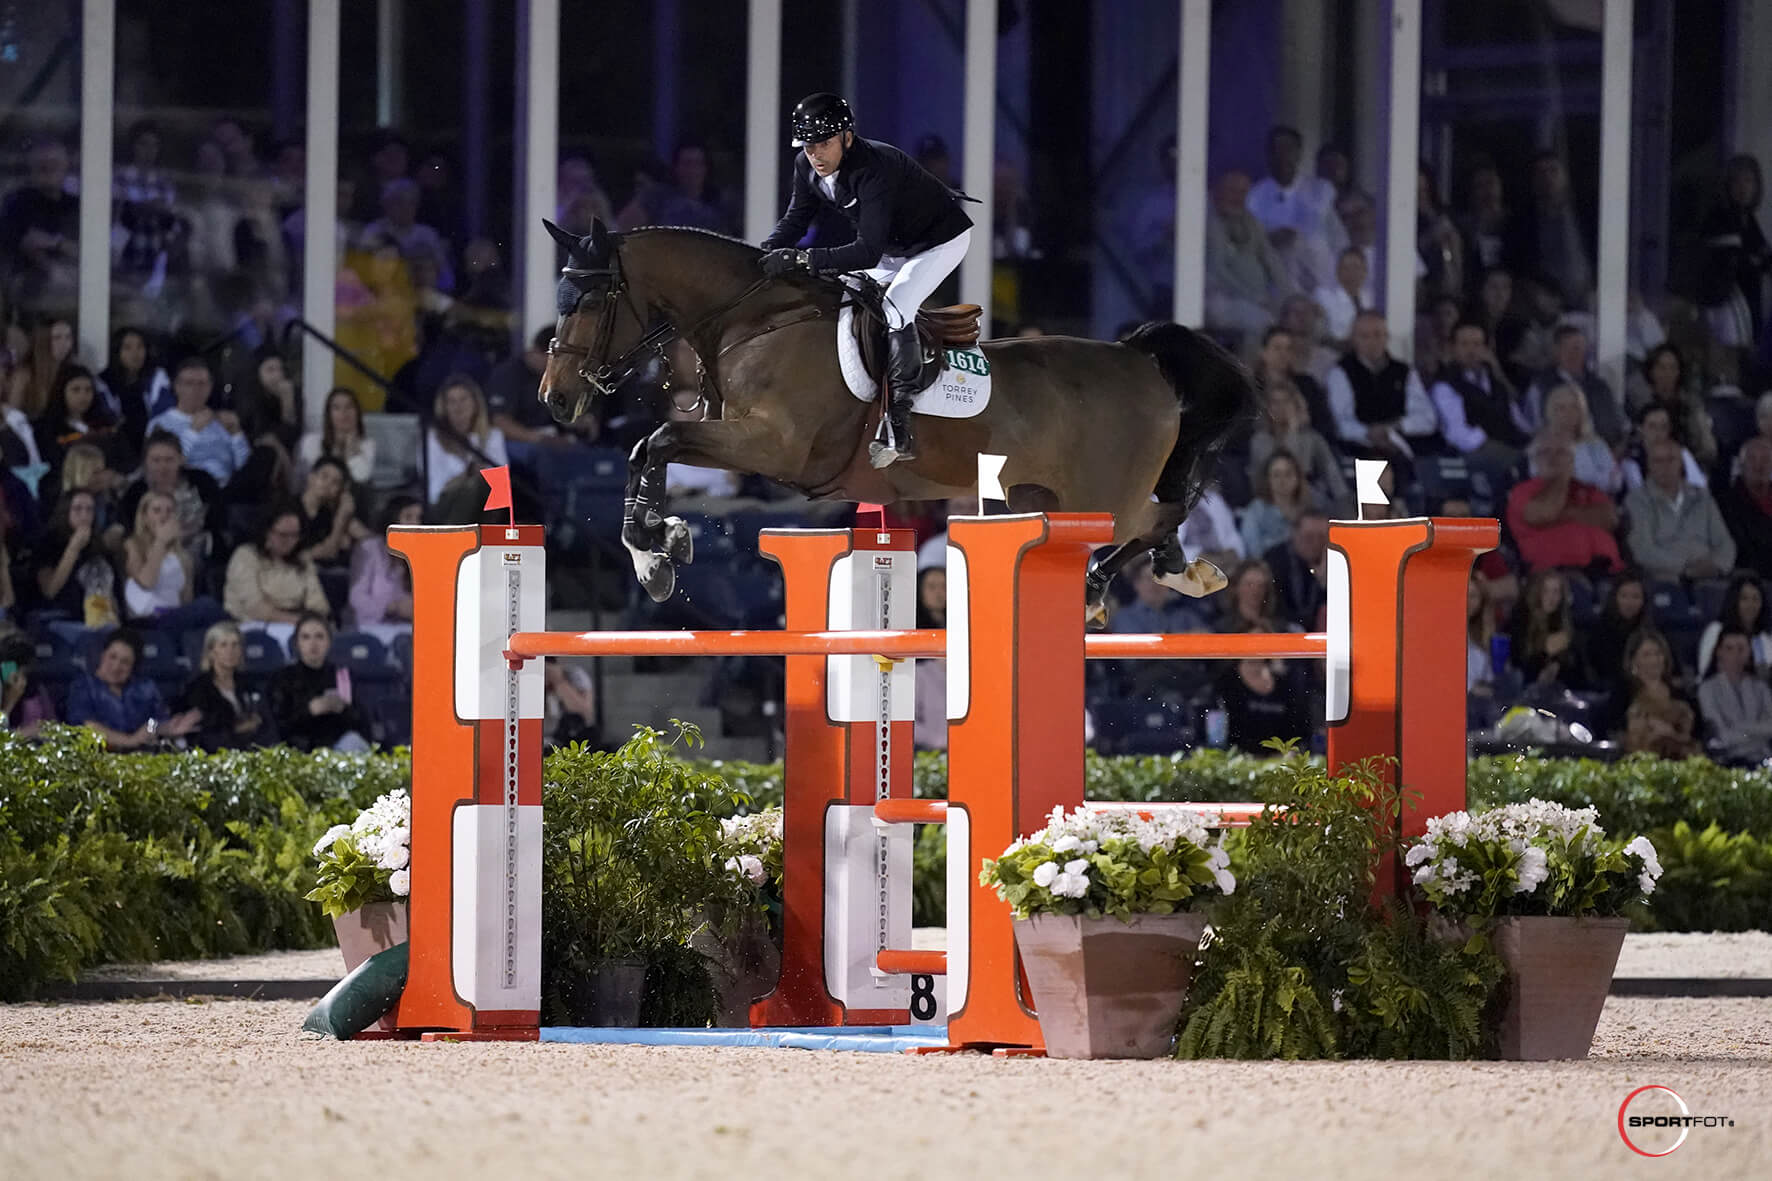 Eric Lamaze 2nd in NetJets Grand Prix CSI2* at WEF